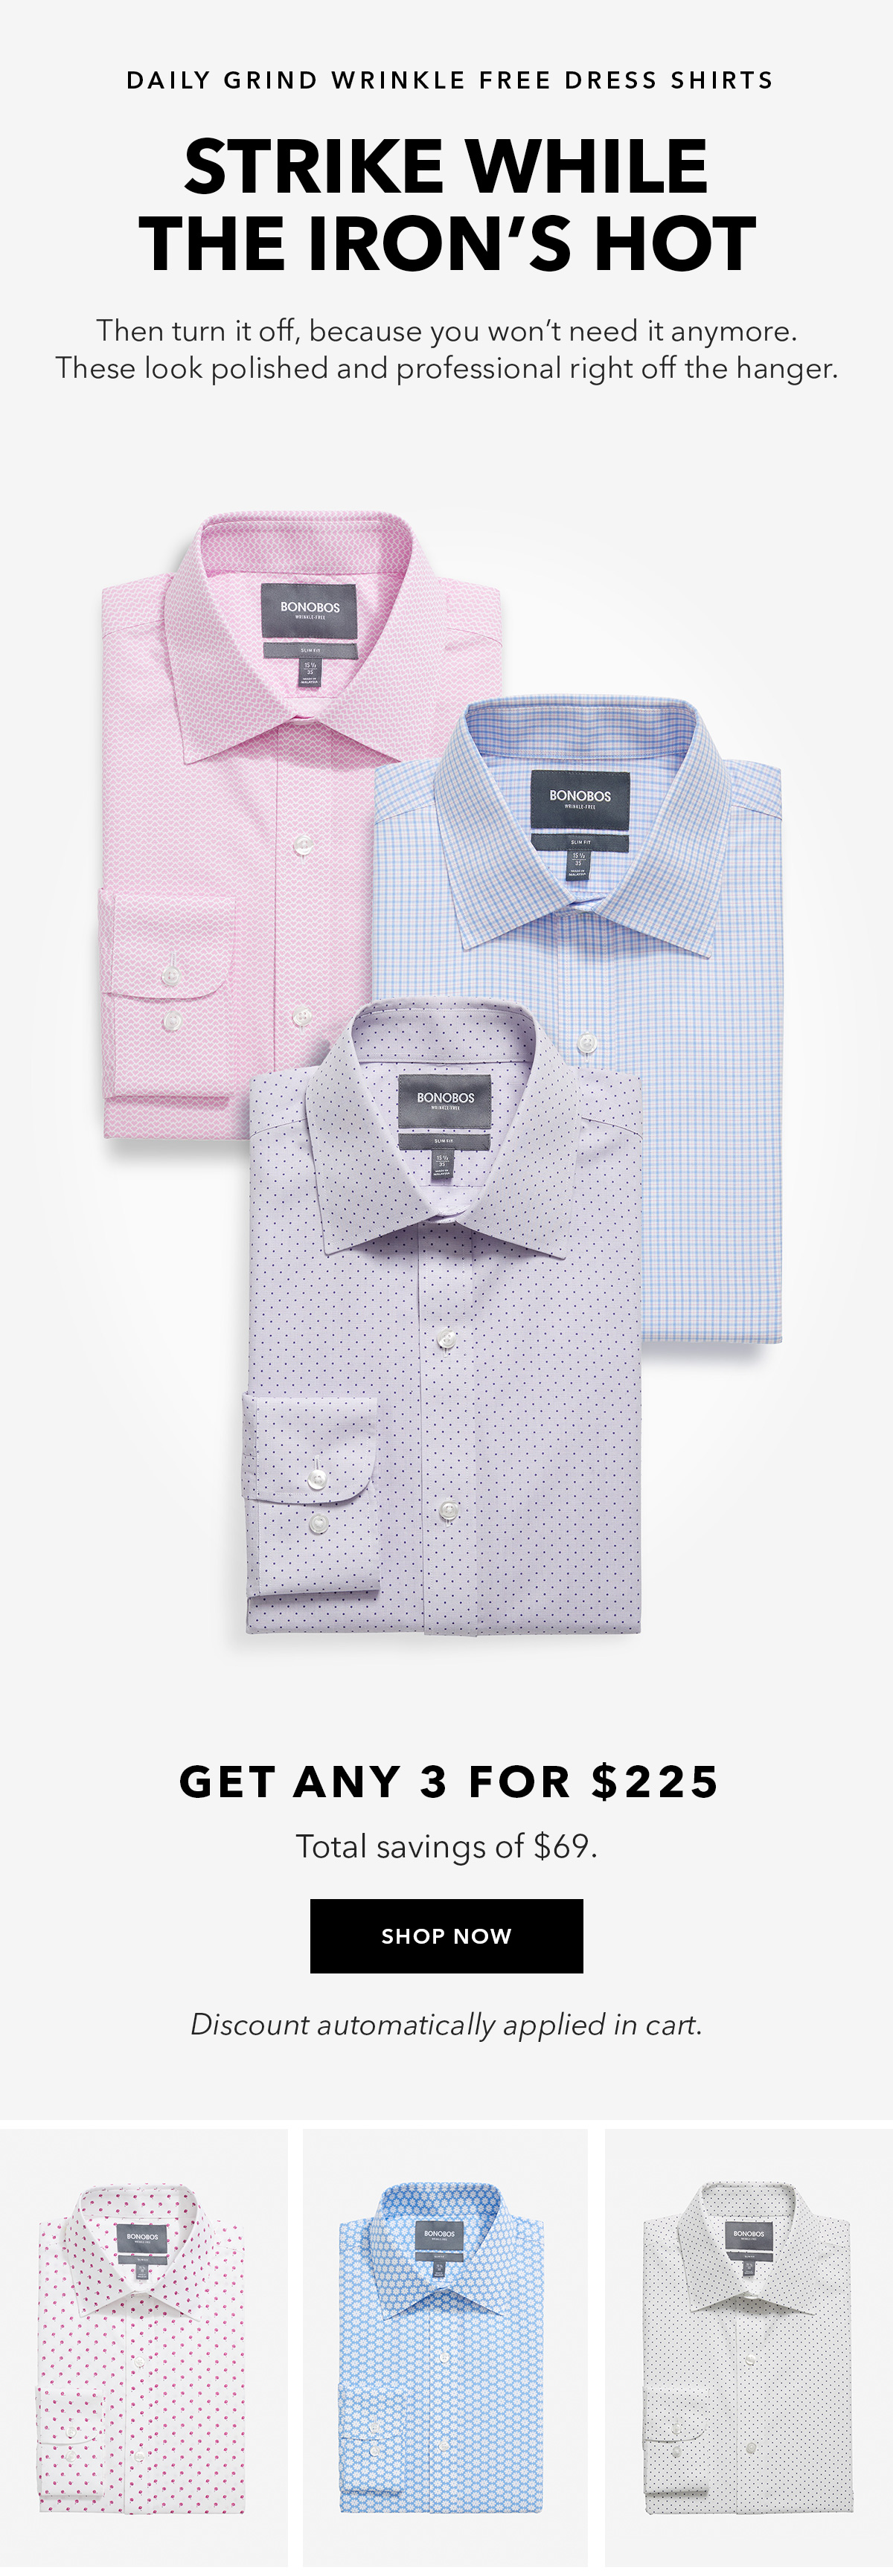 Daily Grind Wrinkle Free Dress Shirts // Strike While the Iron's Hot // Then turn it off, because you won't need it anymore. These look polished and professional right off the hanger. // Get Any 3 for $225 // Discount automatically applied in cart. →